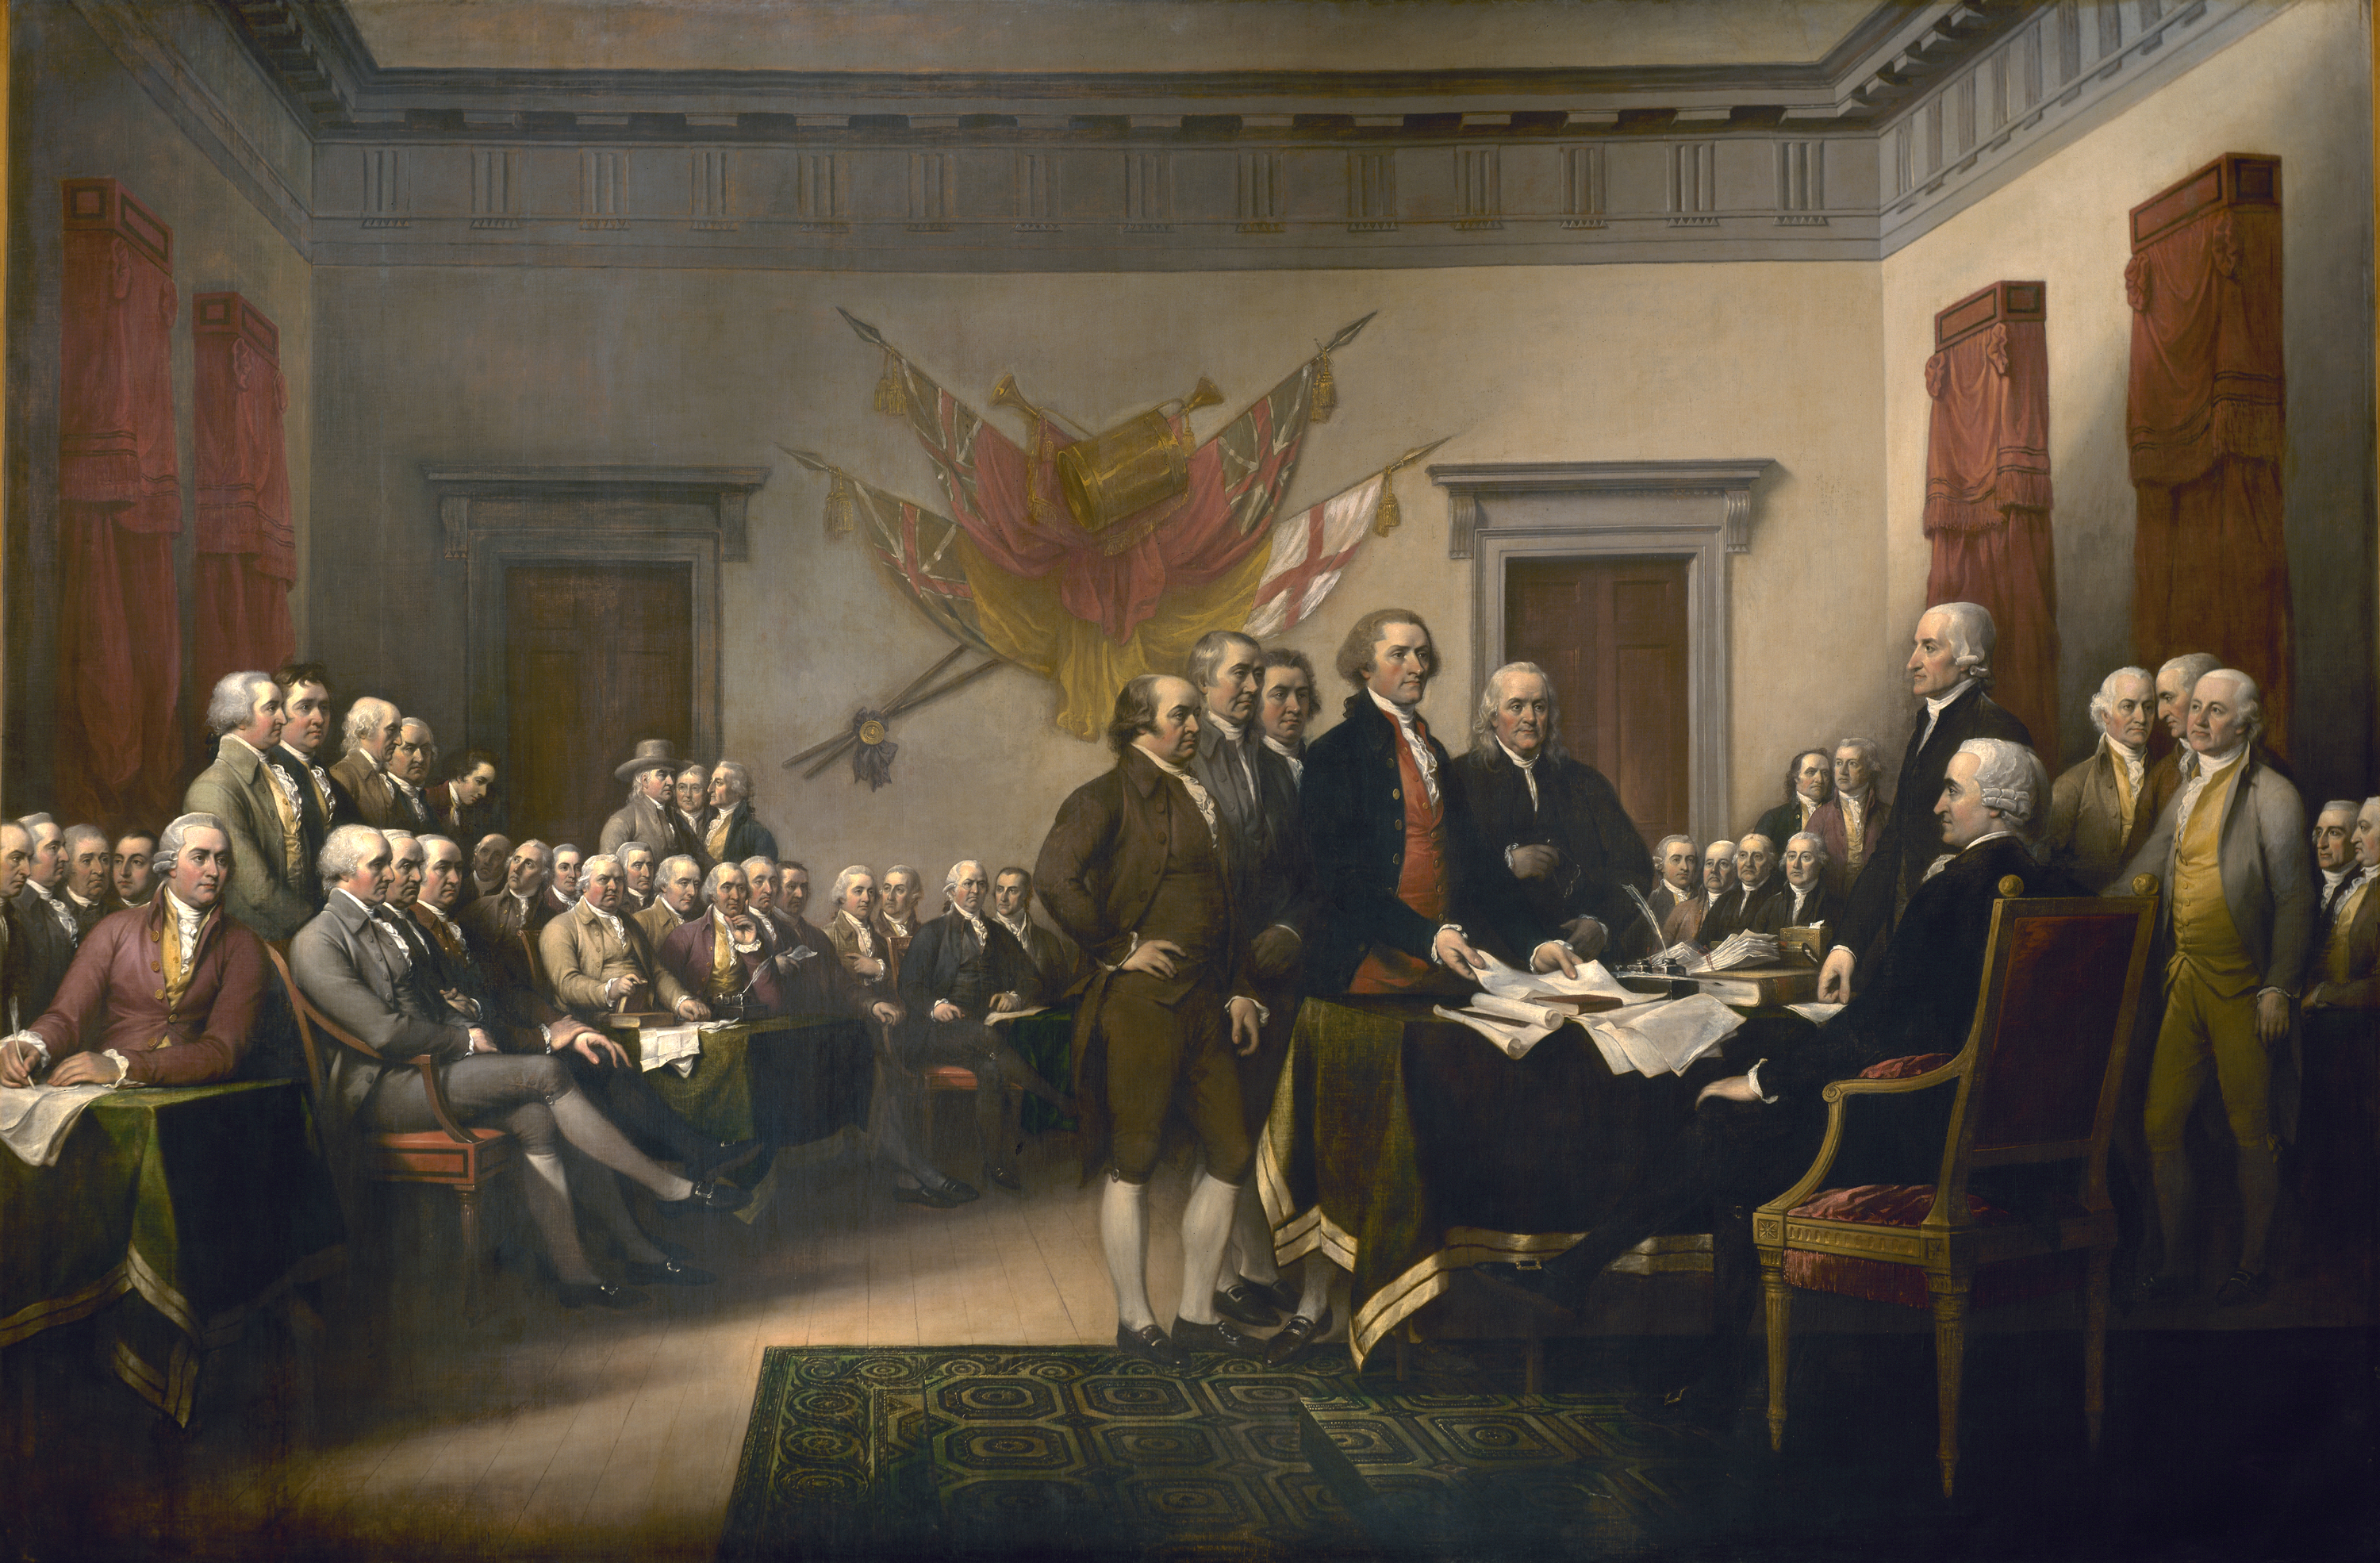 In Congress, July 4, 1776